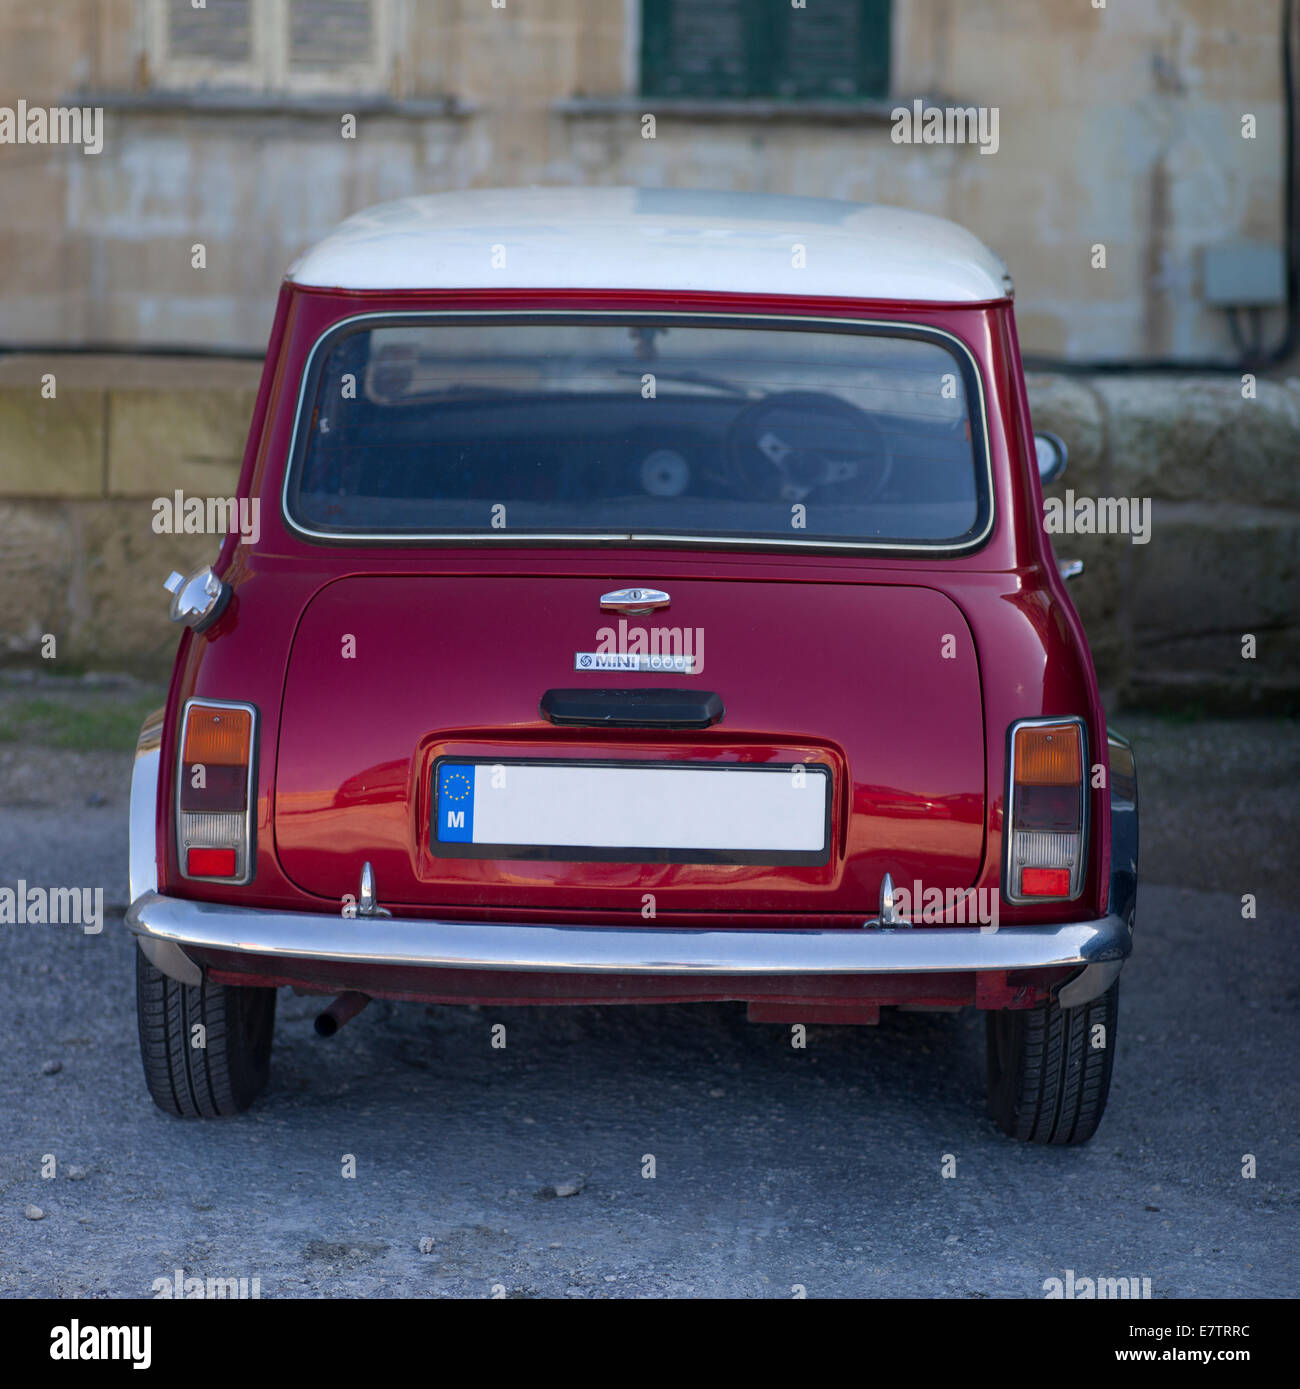 Mini 1000 - Stock Image